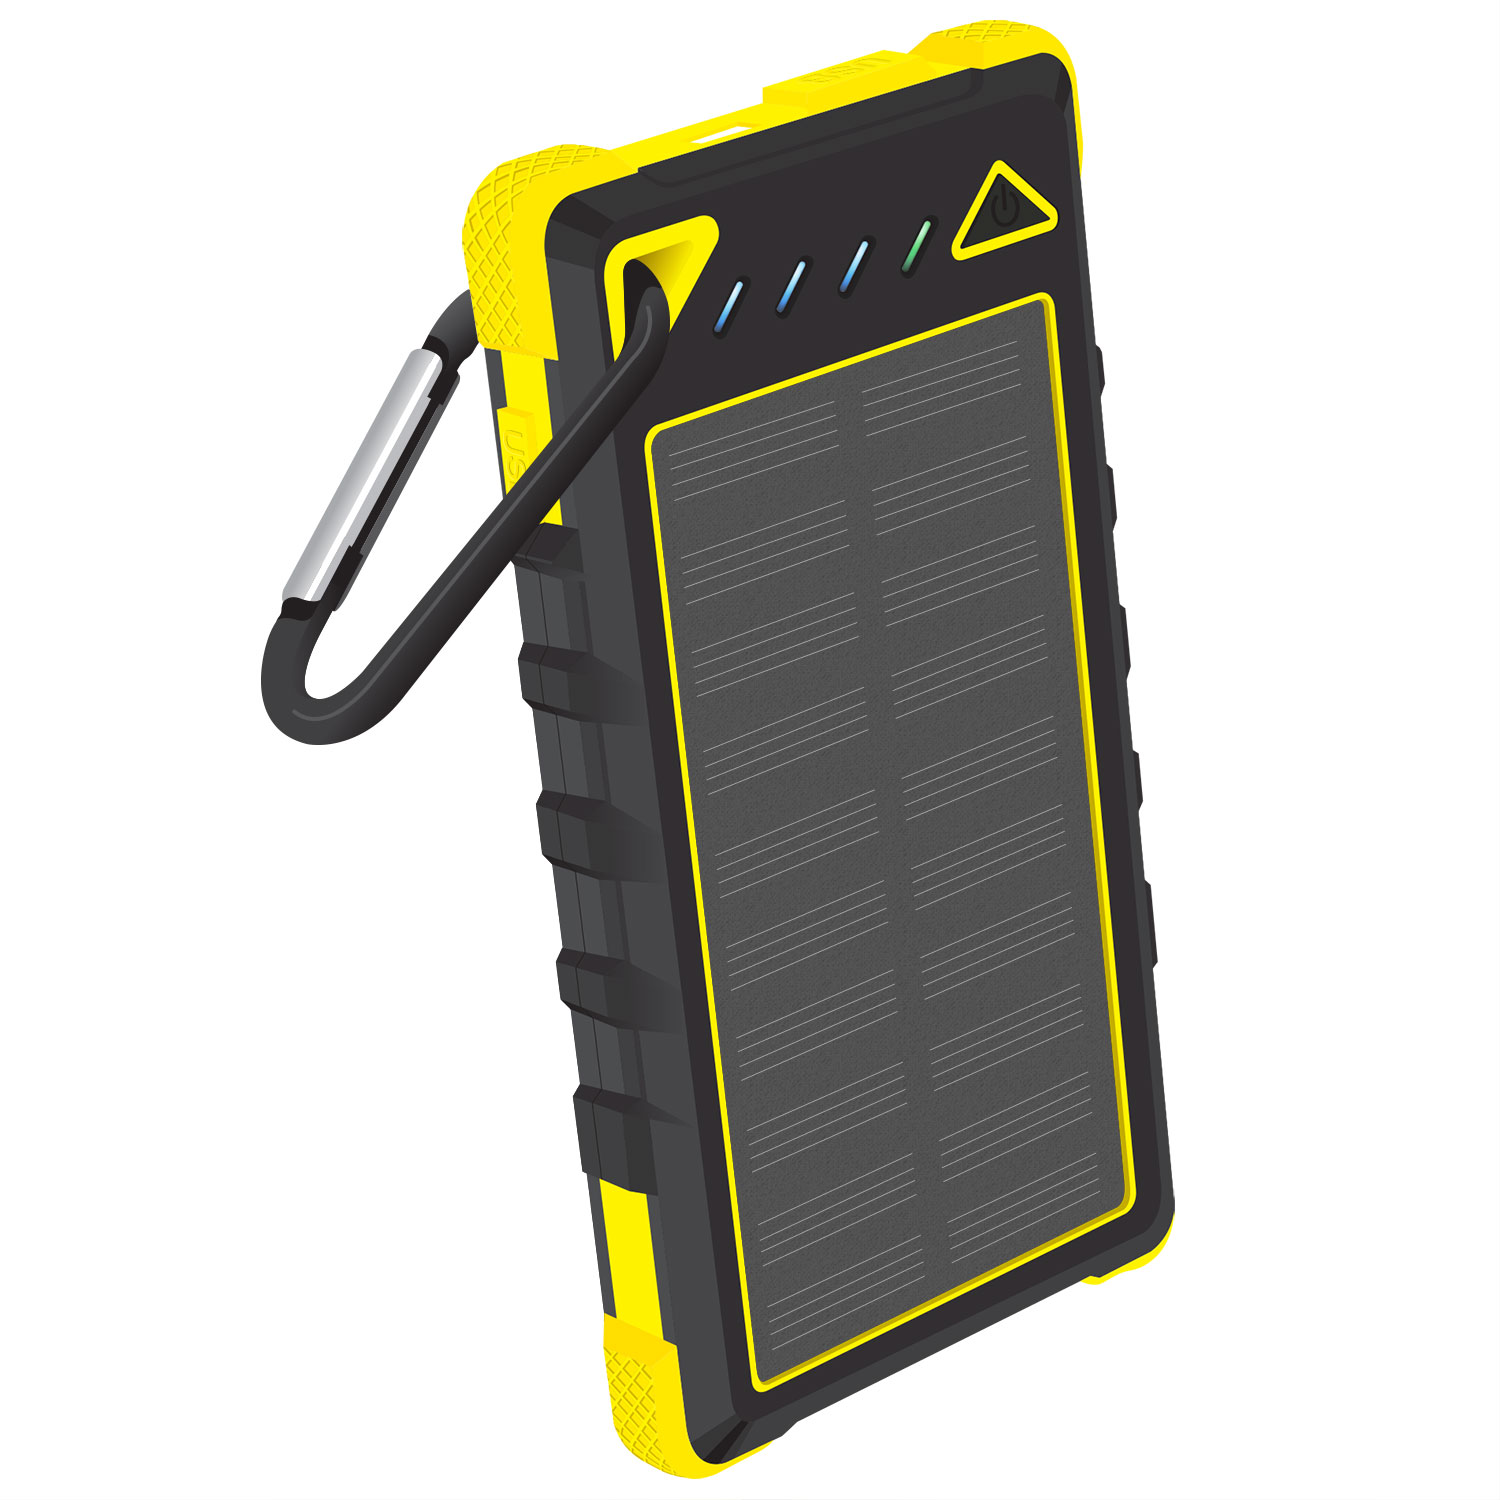 Sonim XP3 Solar Powered Portable PowerBank Type-C Yellow